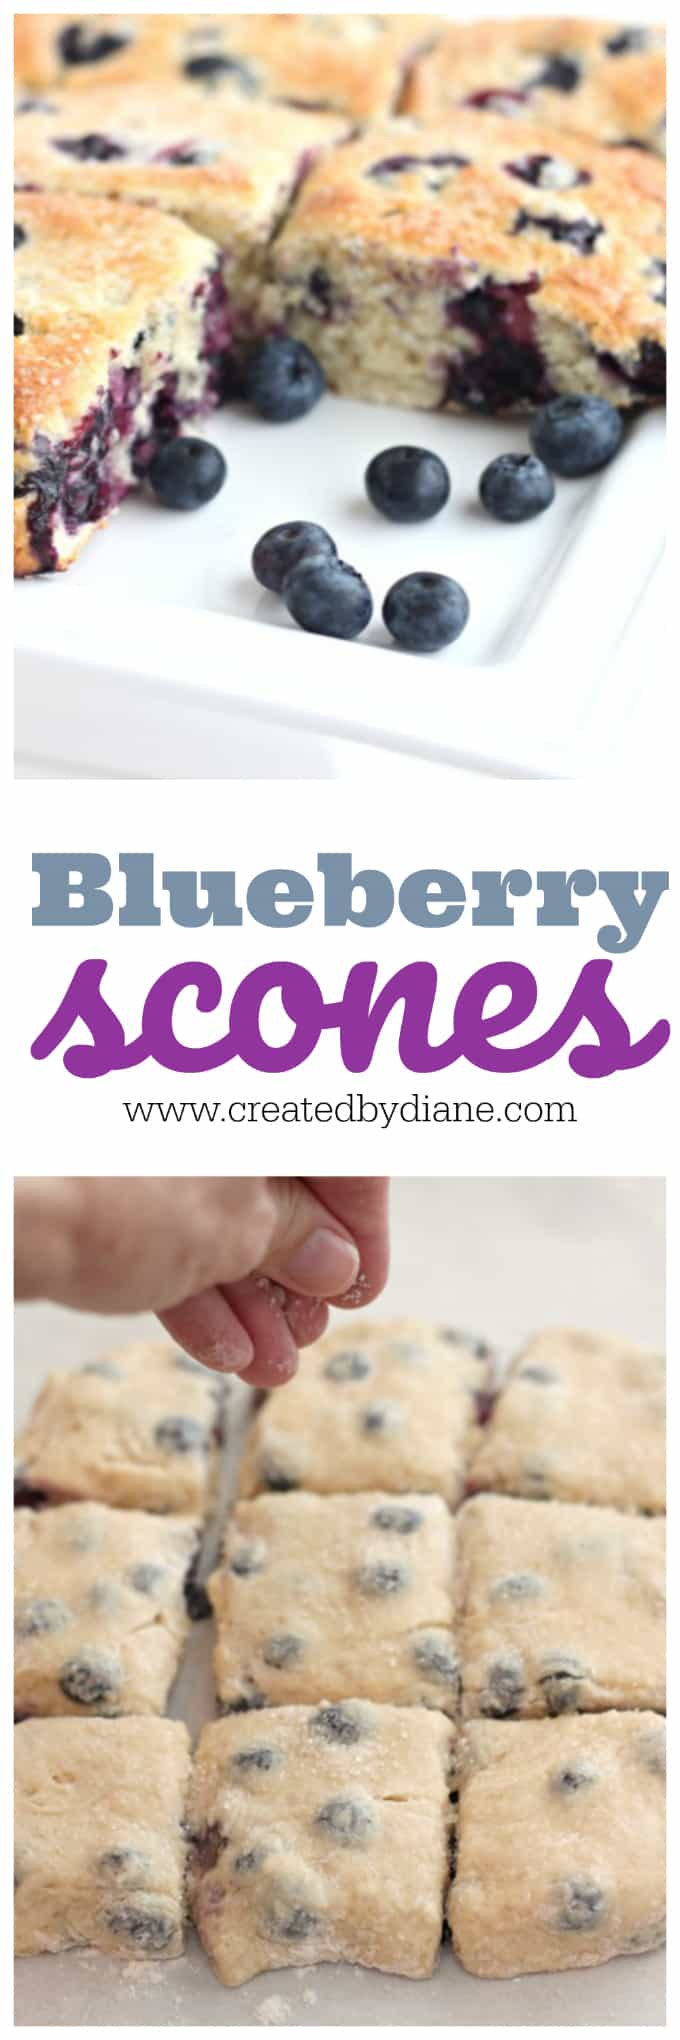 sugar being sprinkles over blueberry scones dough and baked blueberry scones